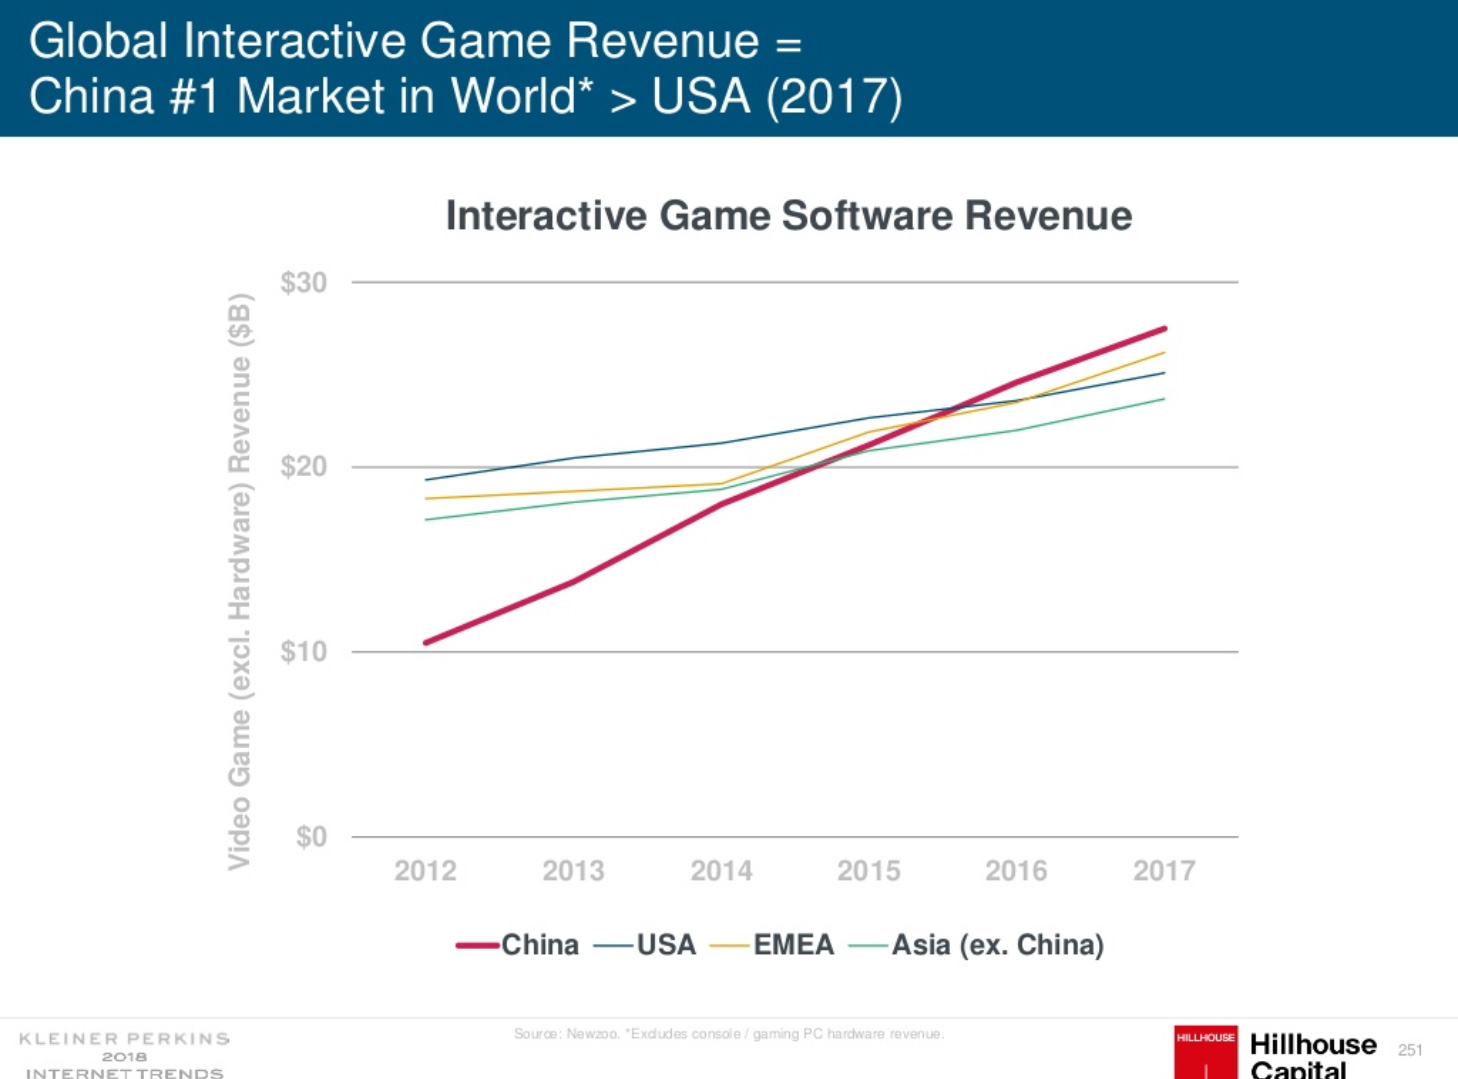 Global Interactive Game Revenue in China